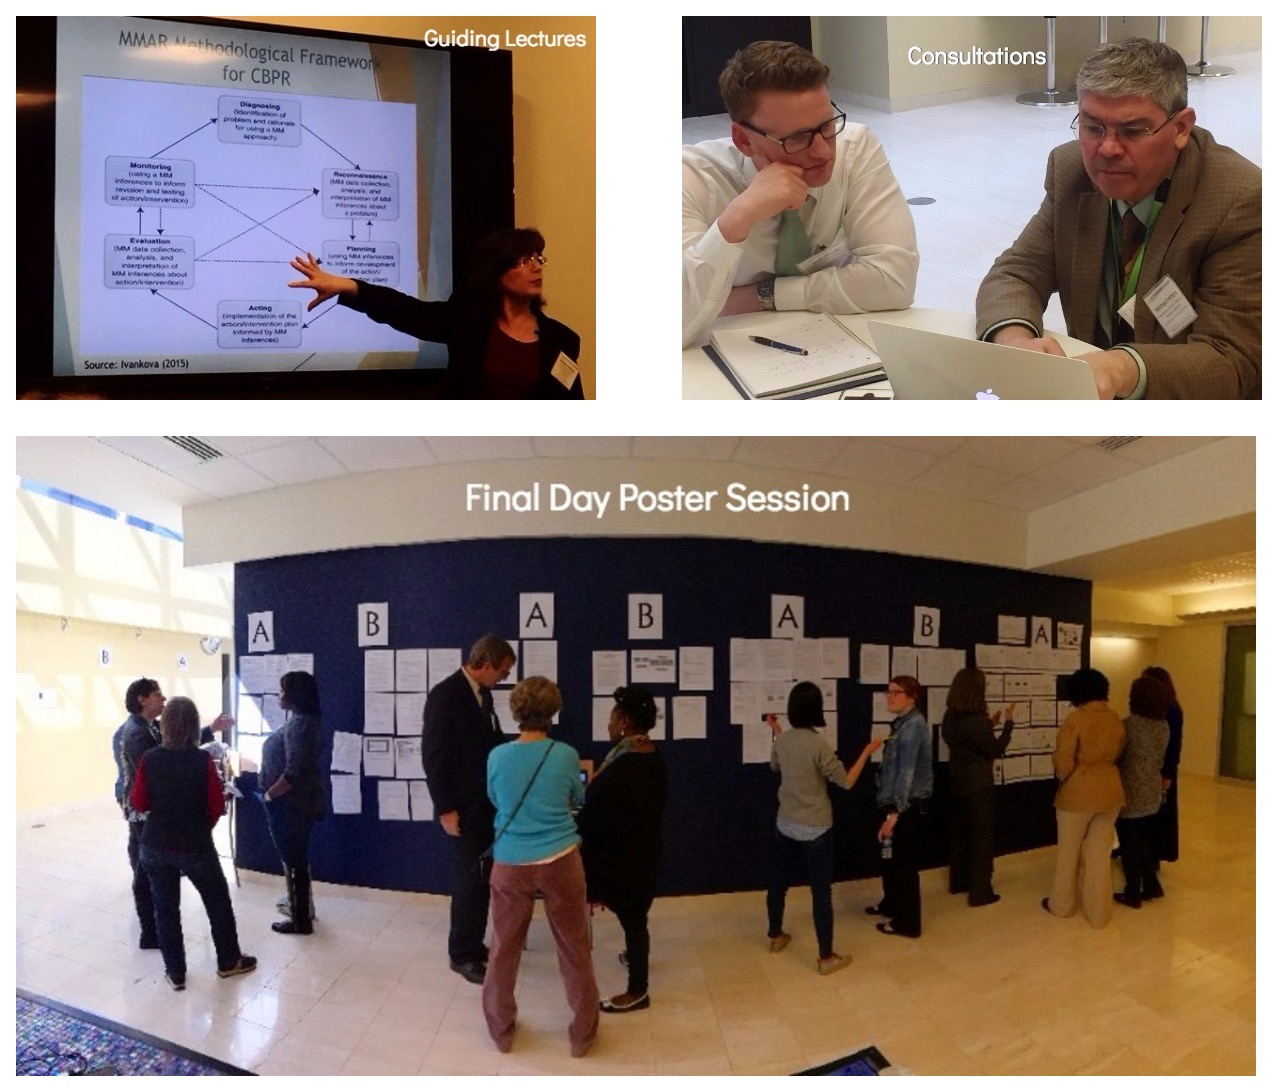 Michigan Mixed Methods workshop guiding lessons consultations poster session